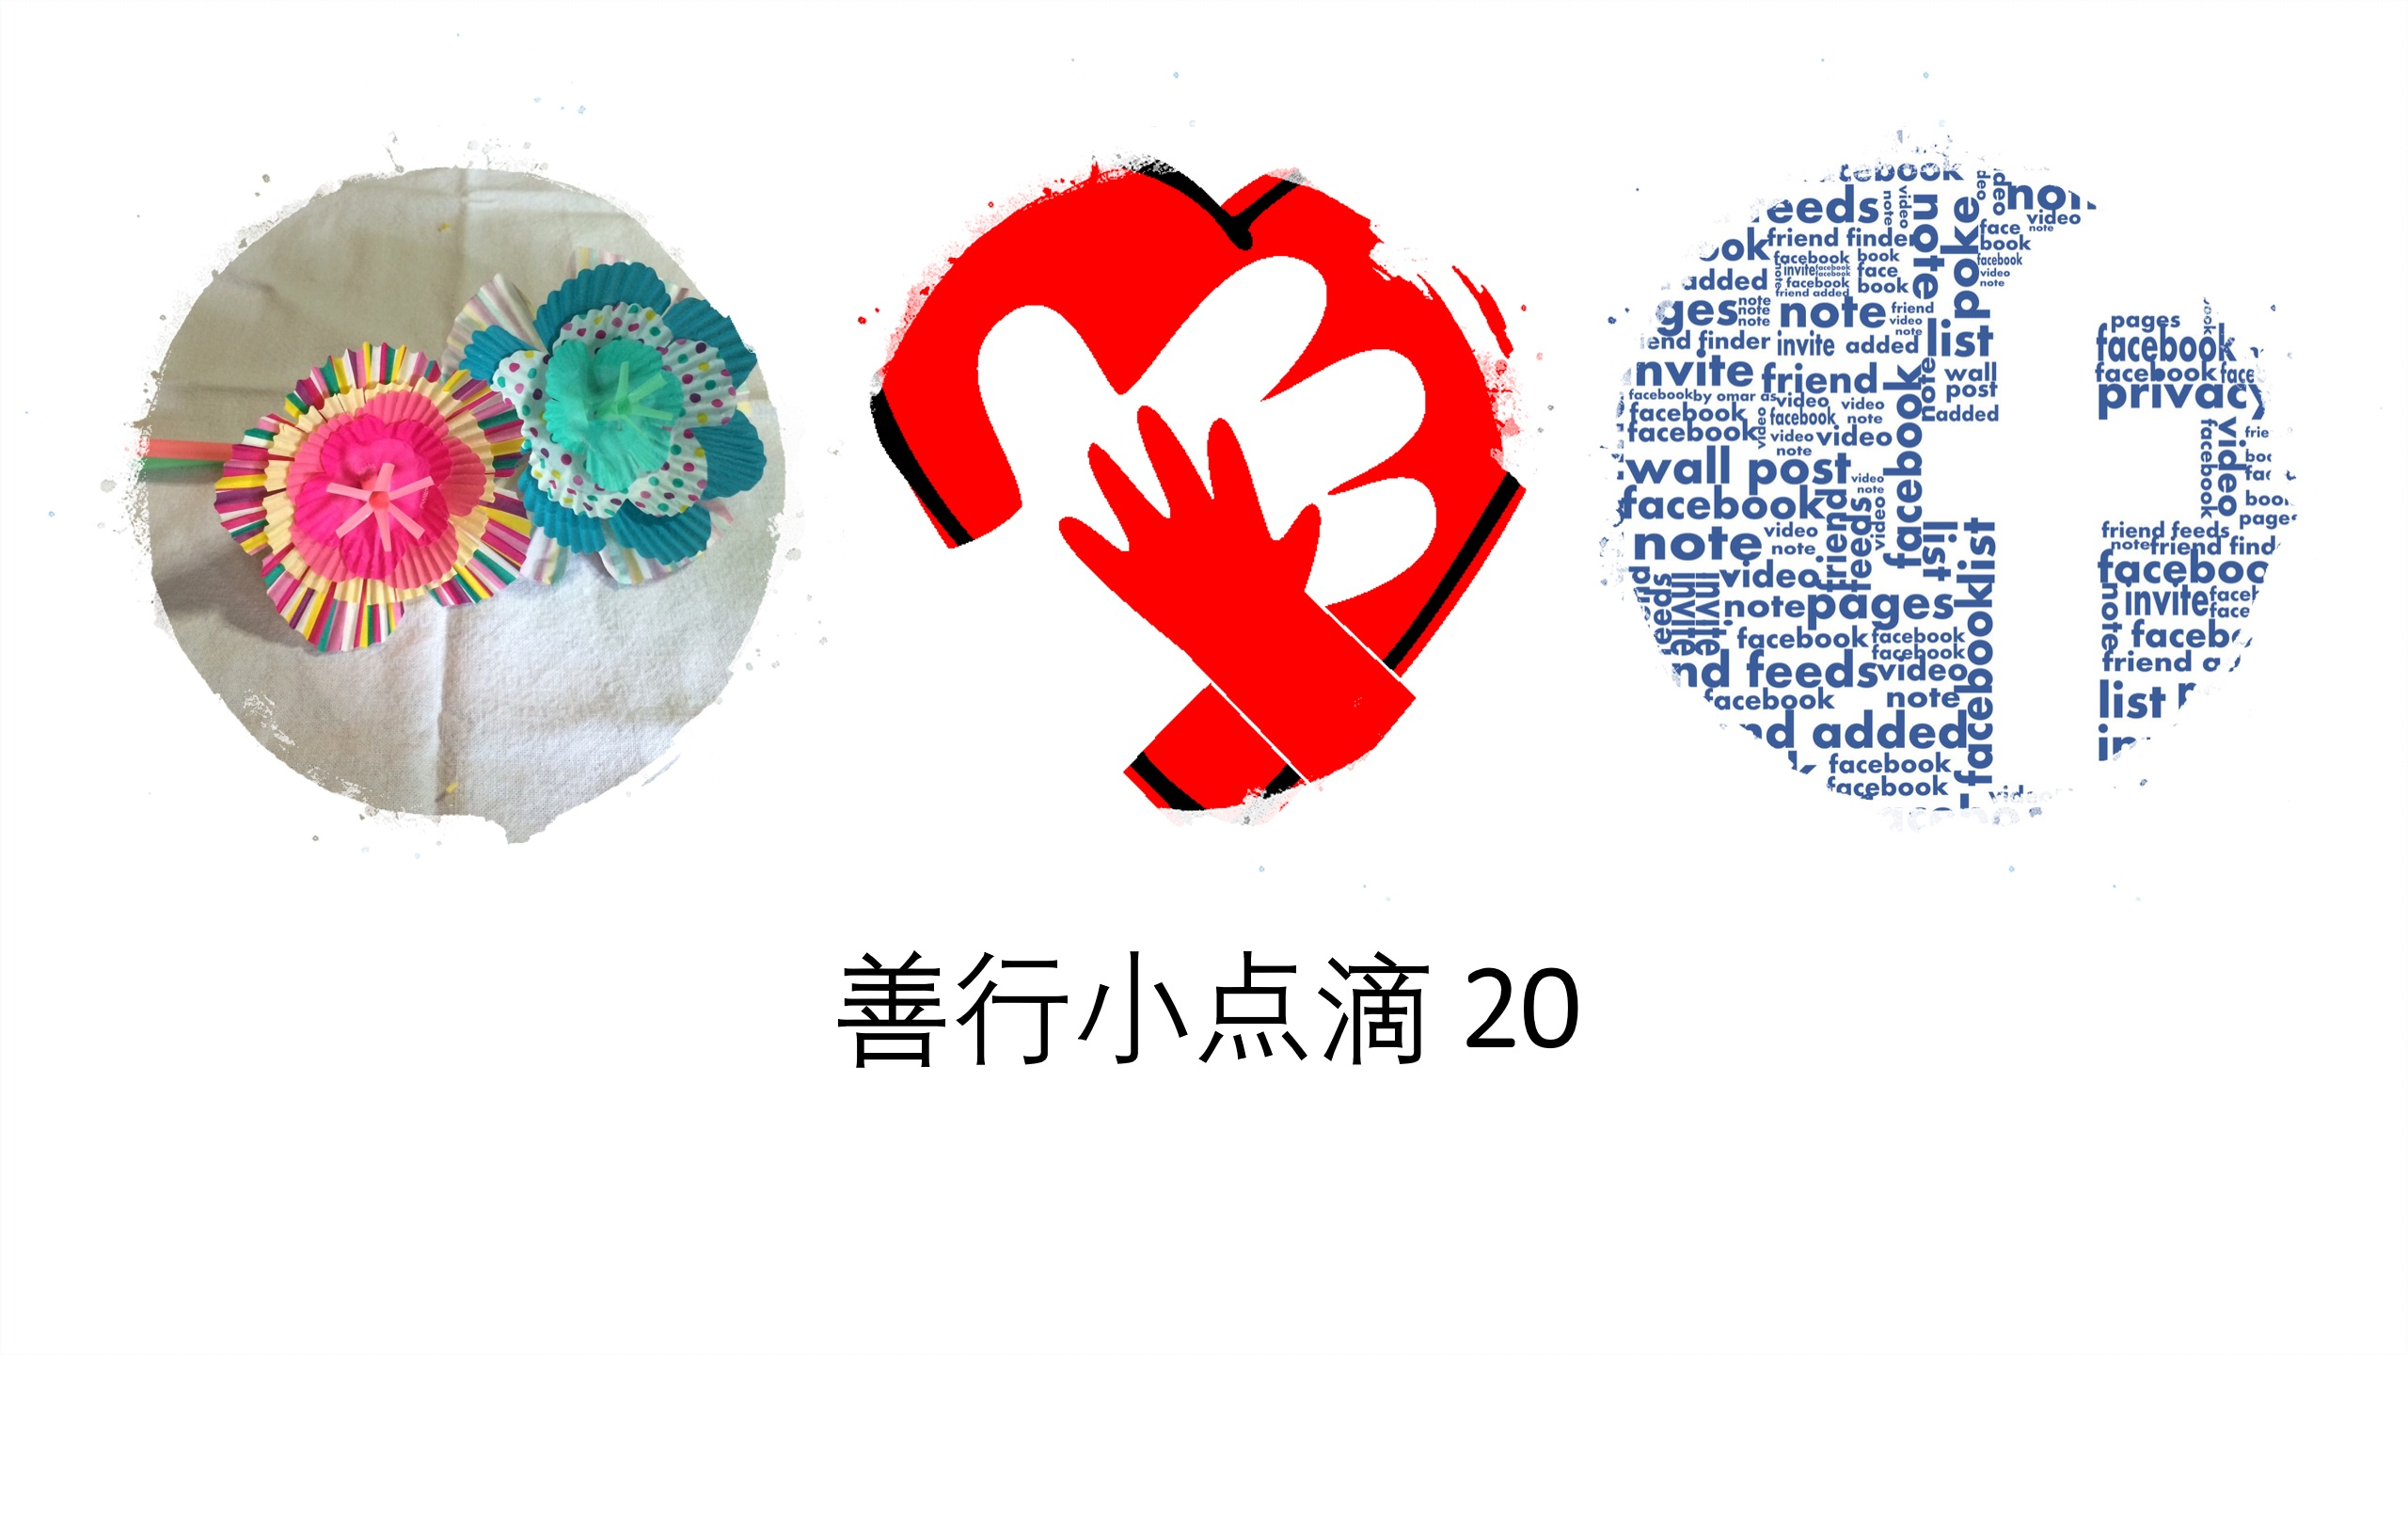 """VIRTUOUS ACT SHARING 20"" STAY HEALTHY STAY POSITIVE 39 善行小点滴分享 20 – 打包正能量 好好护健康  05.07.2020"